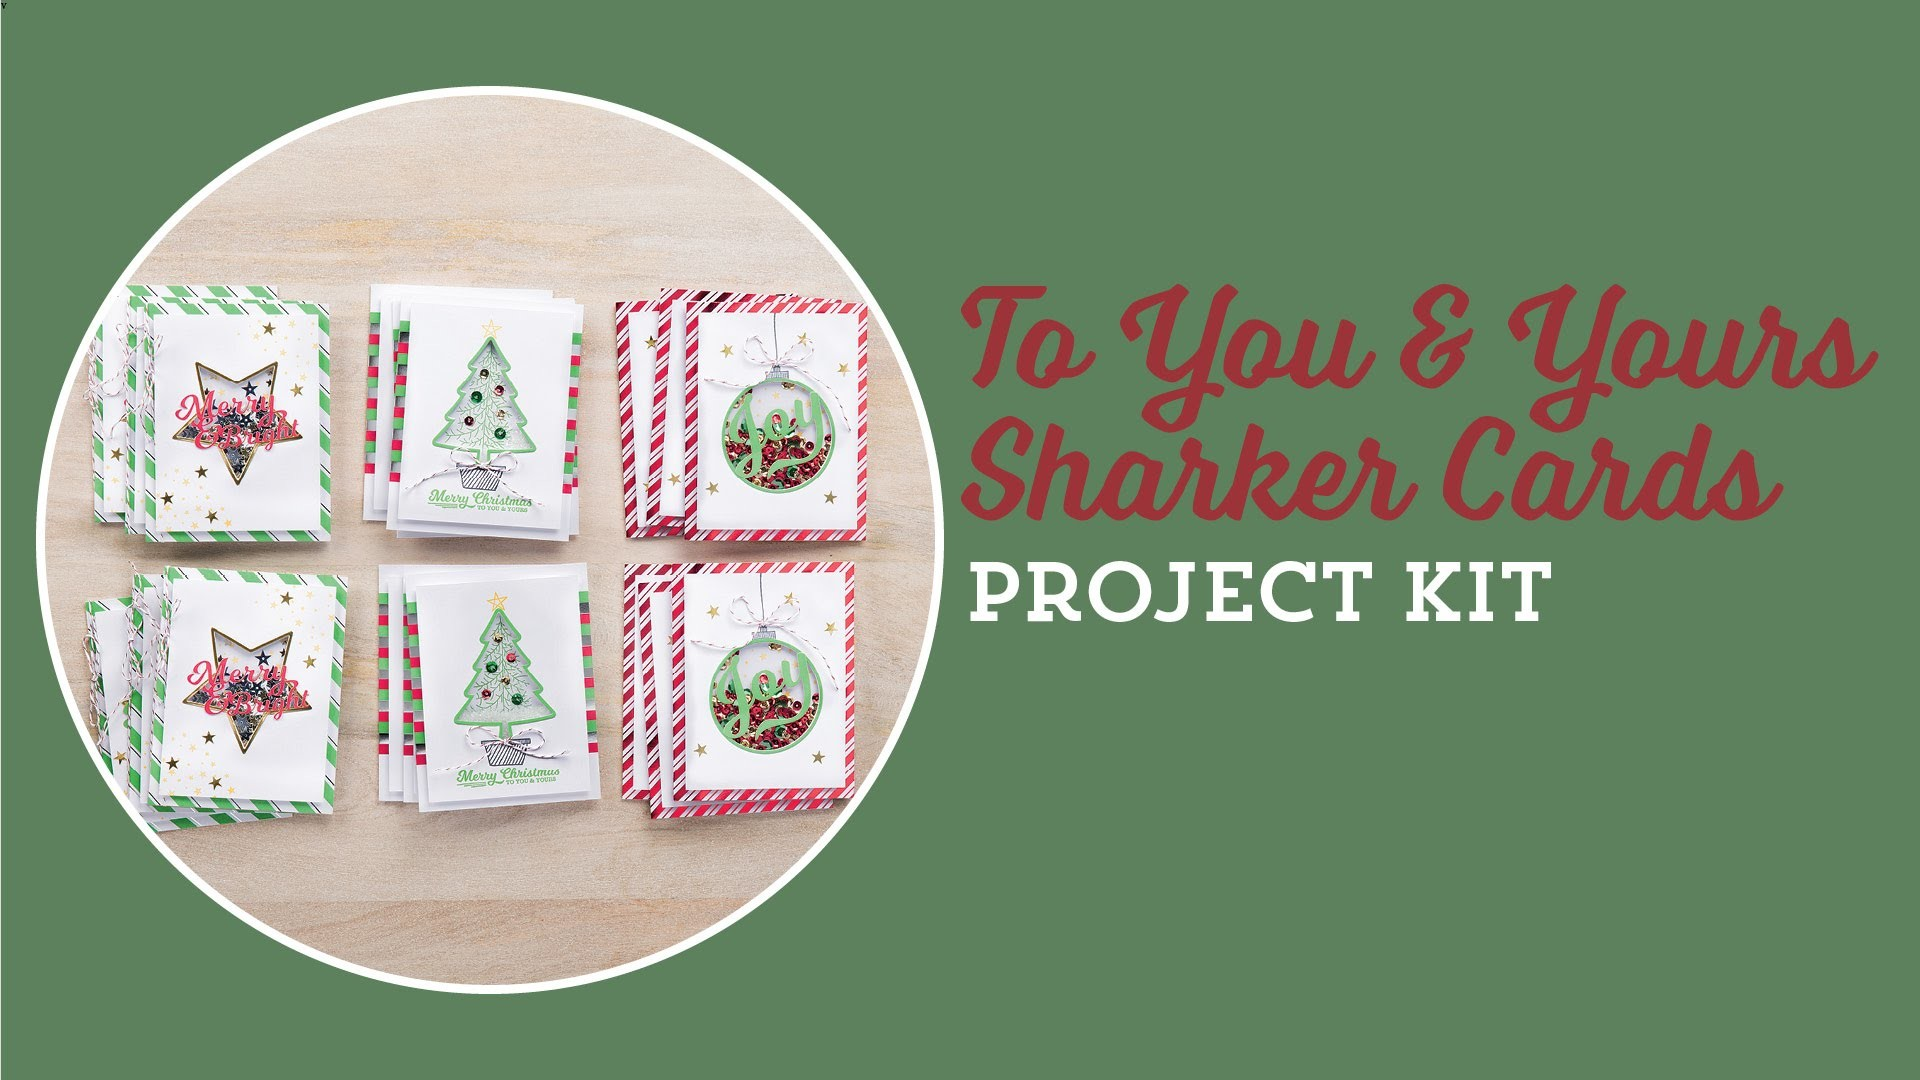 To You & Yours Shaker Cards Project Kit by Stampin' Up!